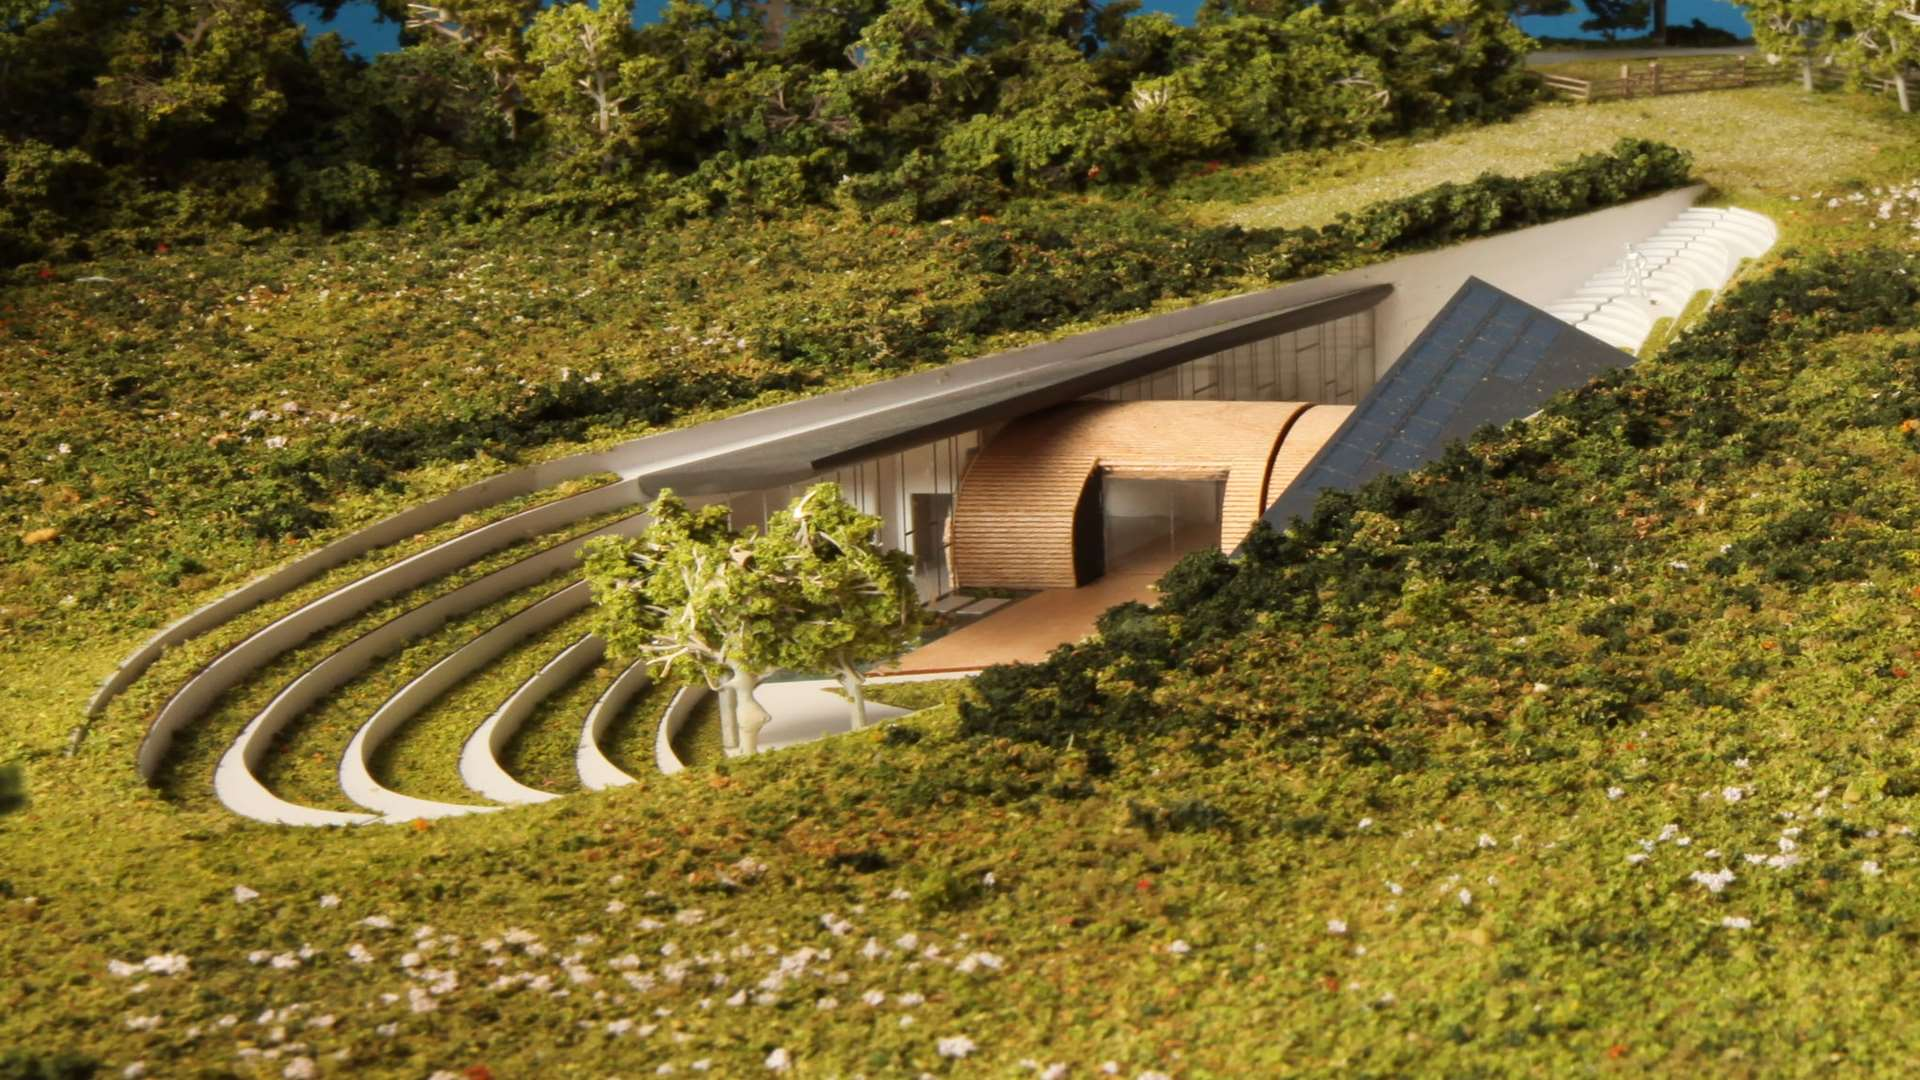 The house will be virtually invisible from above ground. Picture: Hawkes Architecture